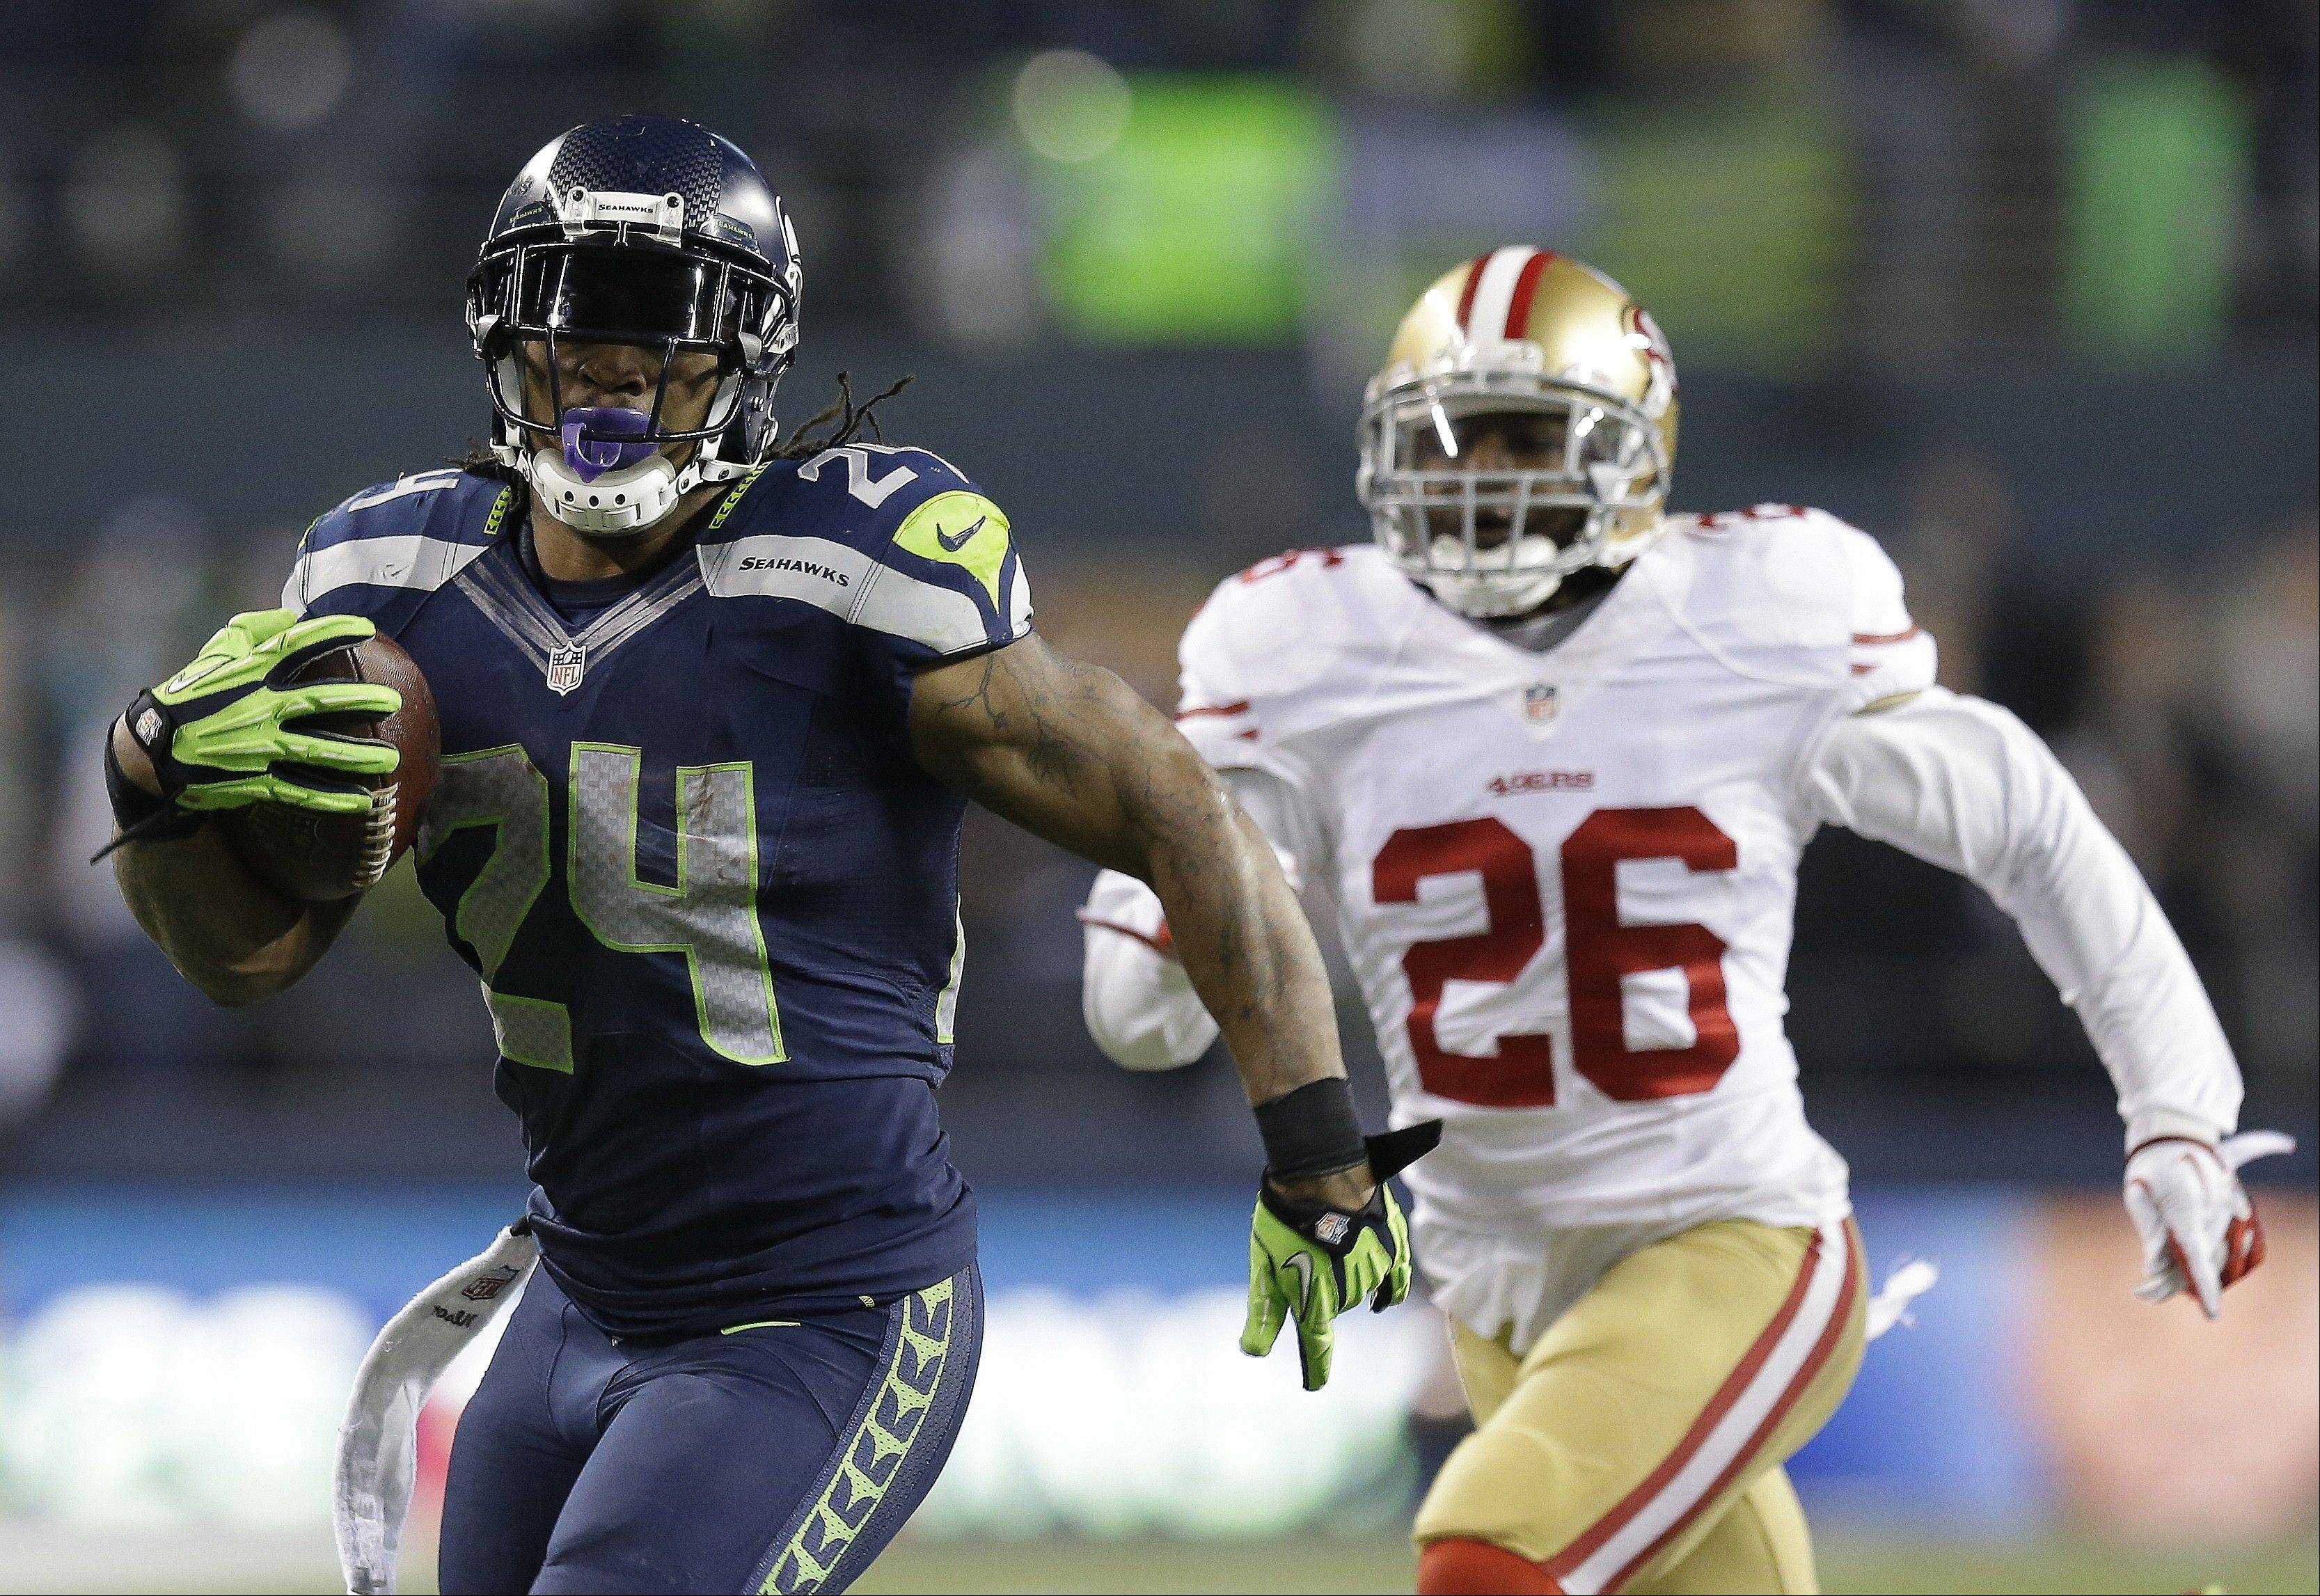 Seattle Seahawks running back Marshawn Lynch breaks away from the San Francisco 49ers' Tramaine Brock for a touch-down run during the second half of the NFL football NFC Championship game, Sunday, Jan. 19, 2014, in Seattle.